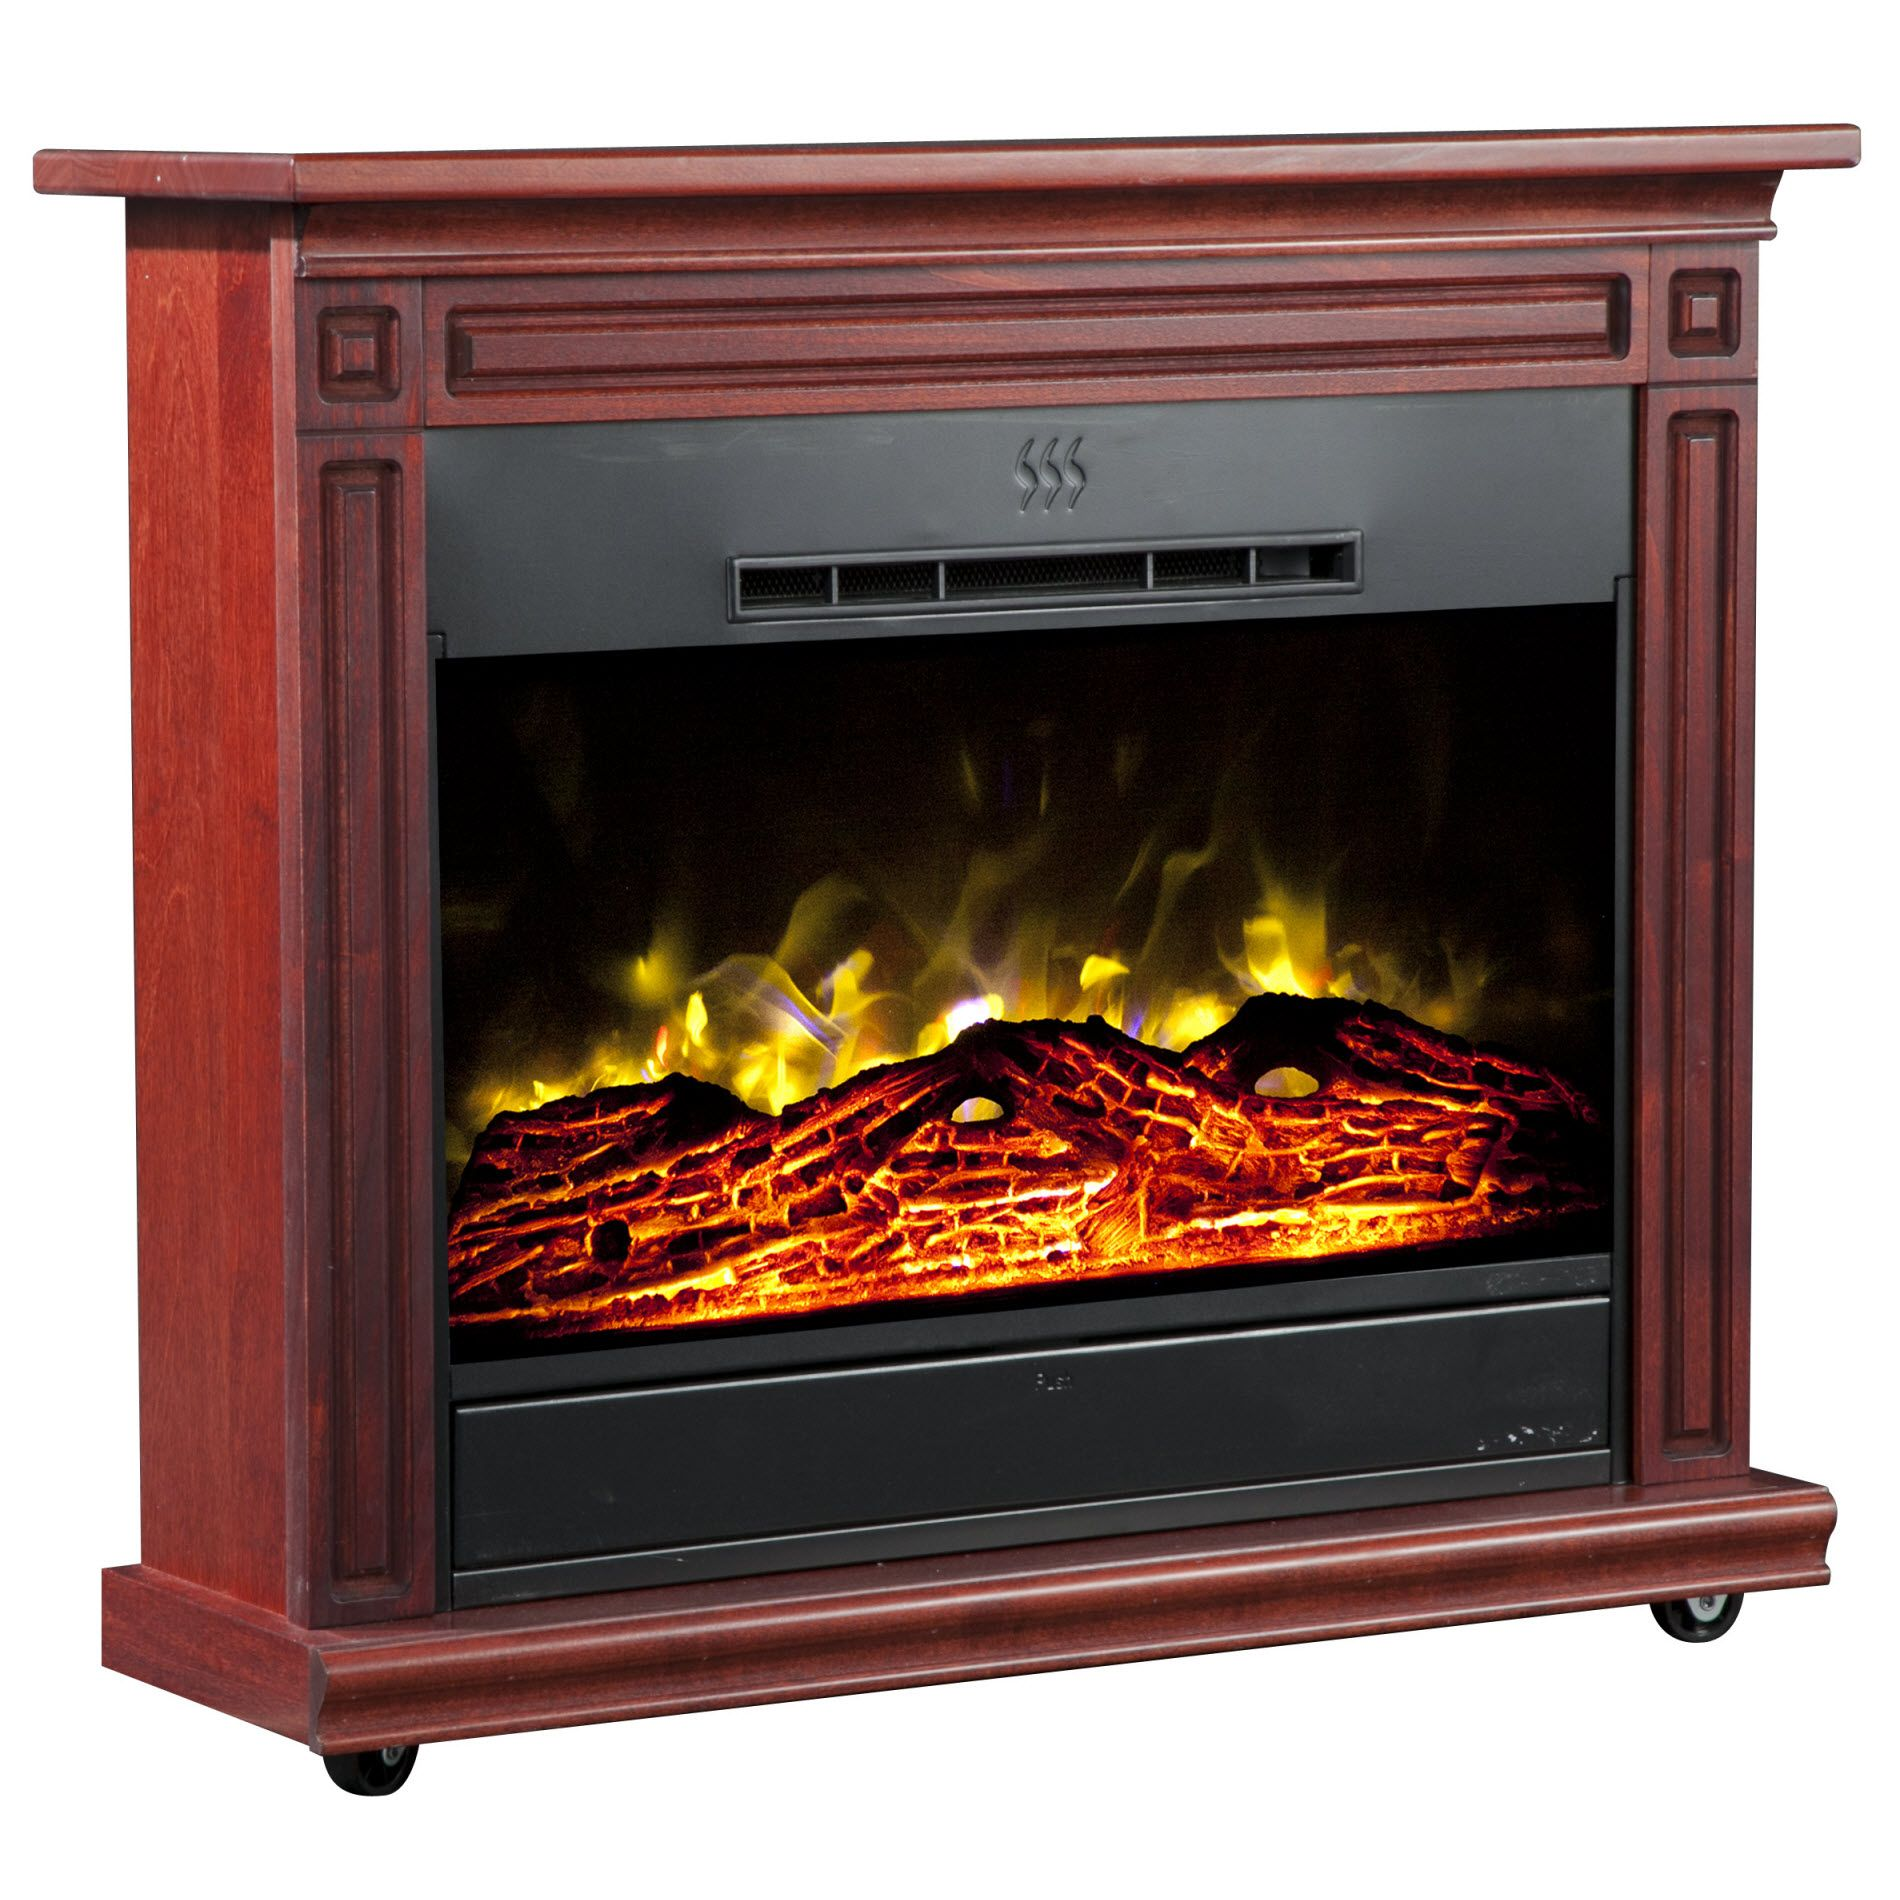 Heat Surge Roll-n-Glow Electric Fireplace  - Cherry